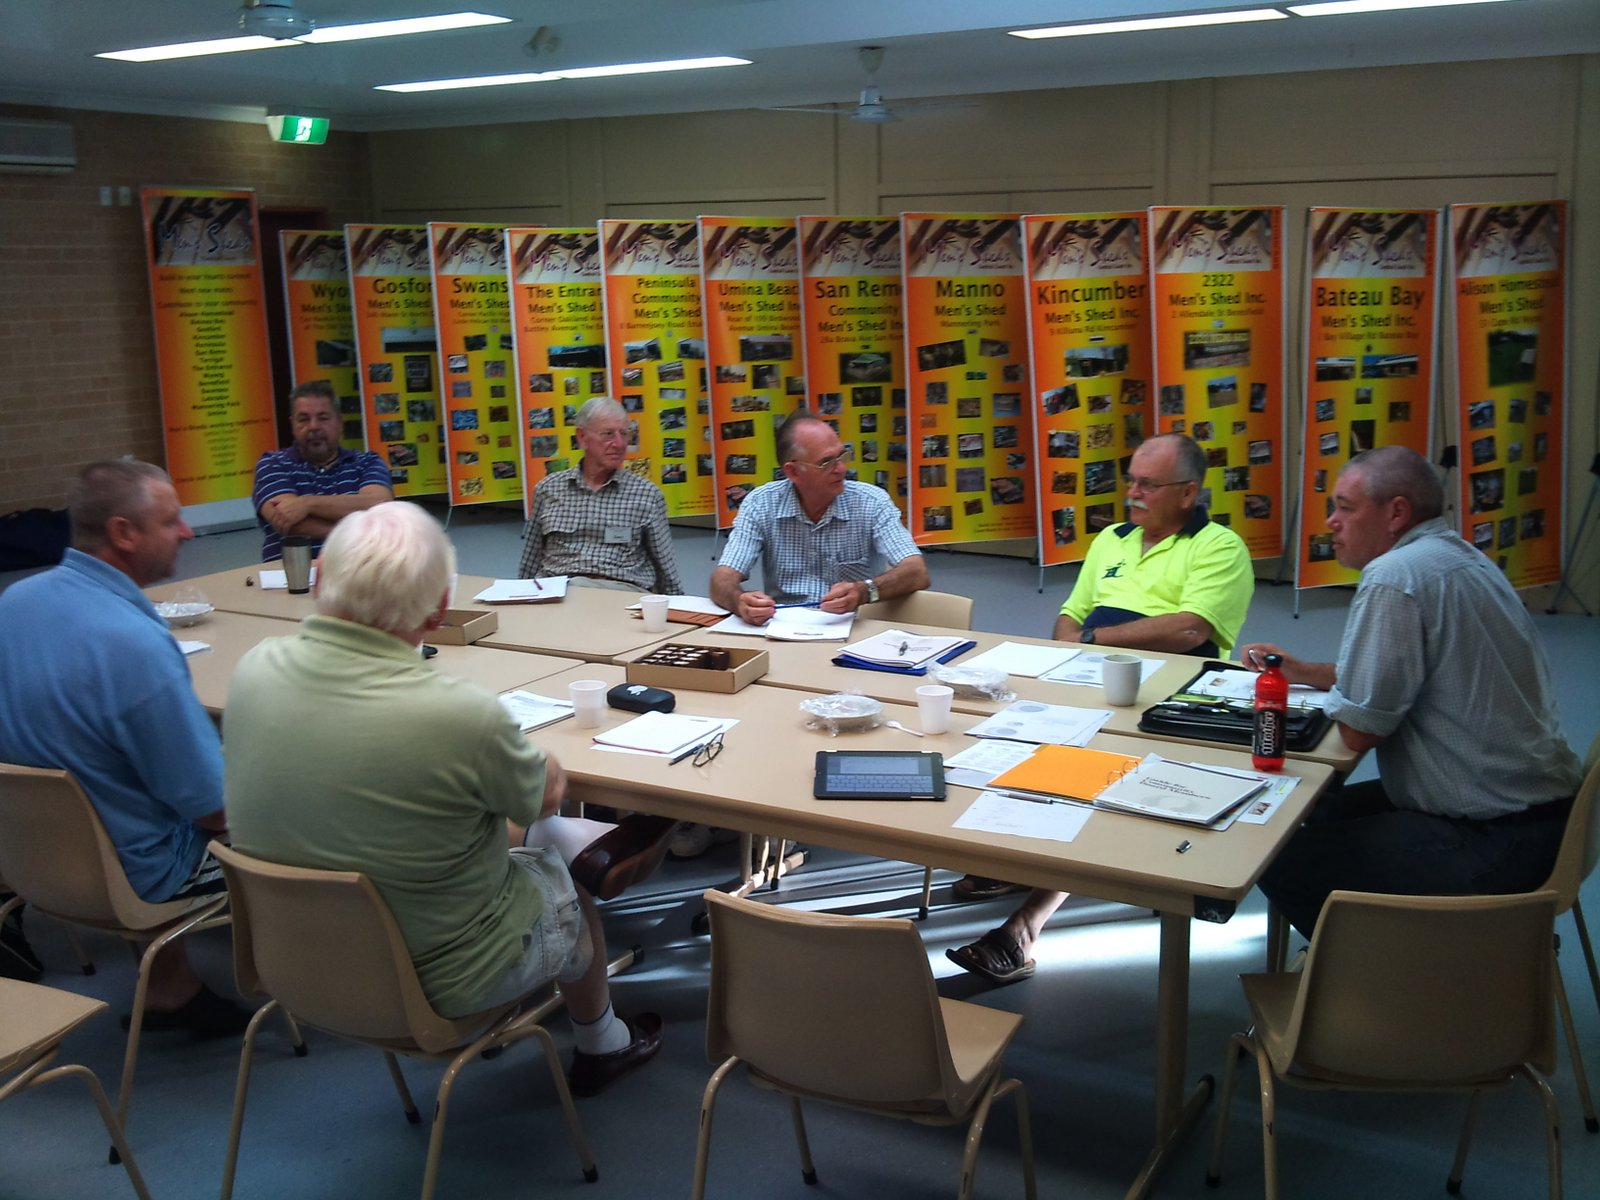 Men's Sheds - Central Coast: May 2012